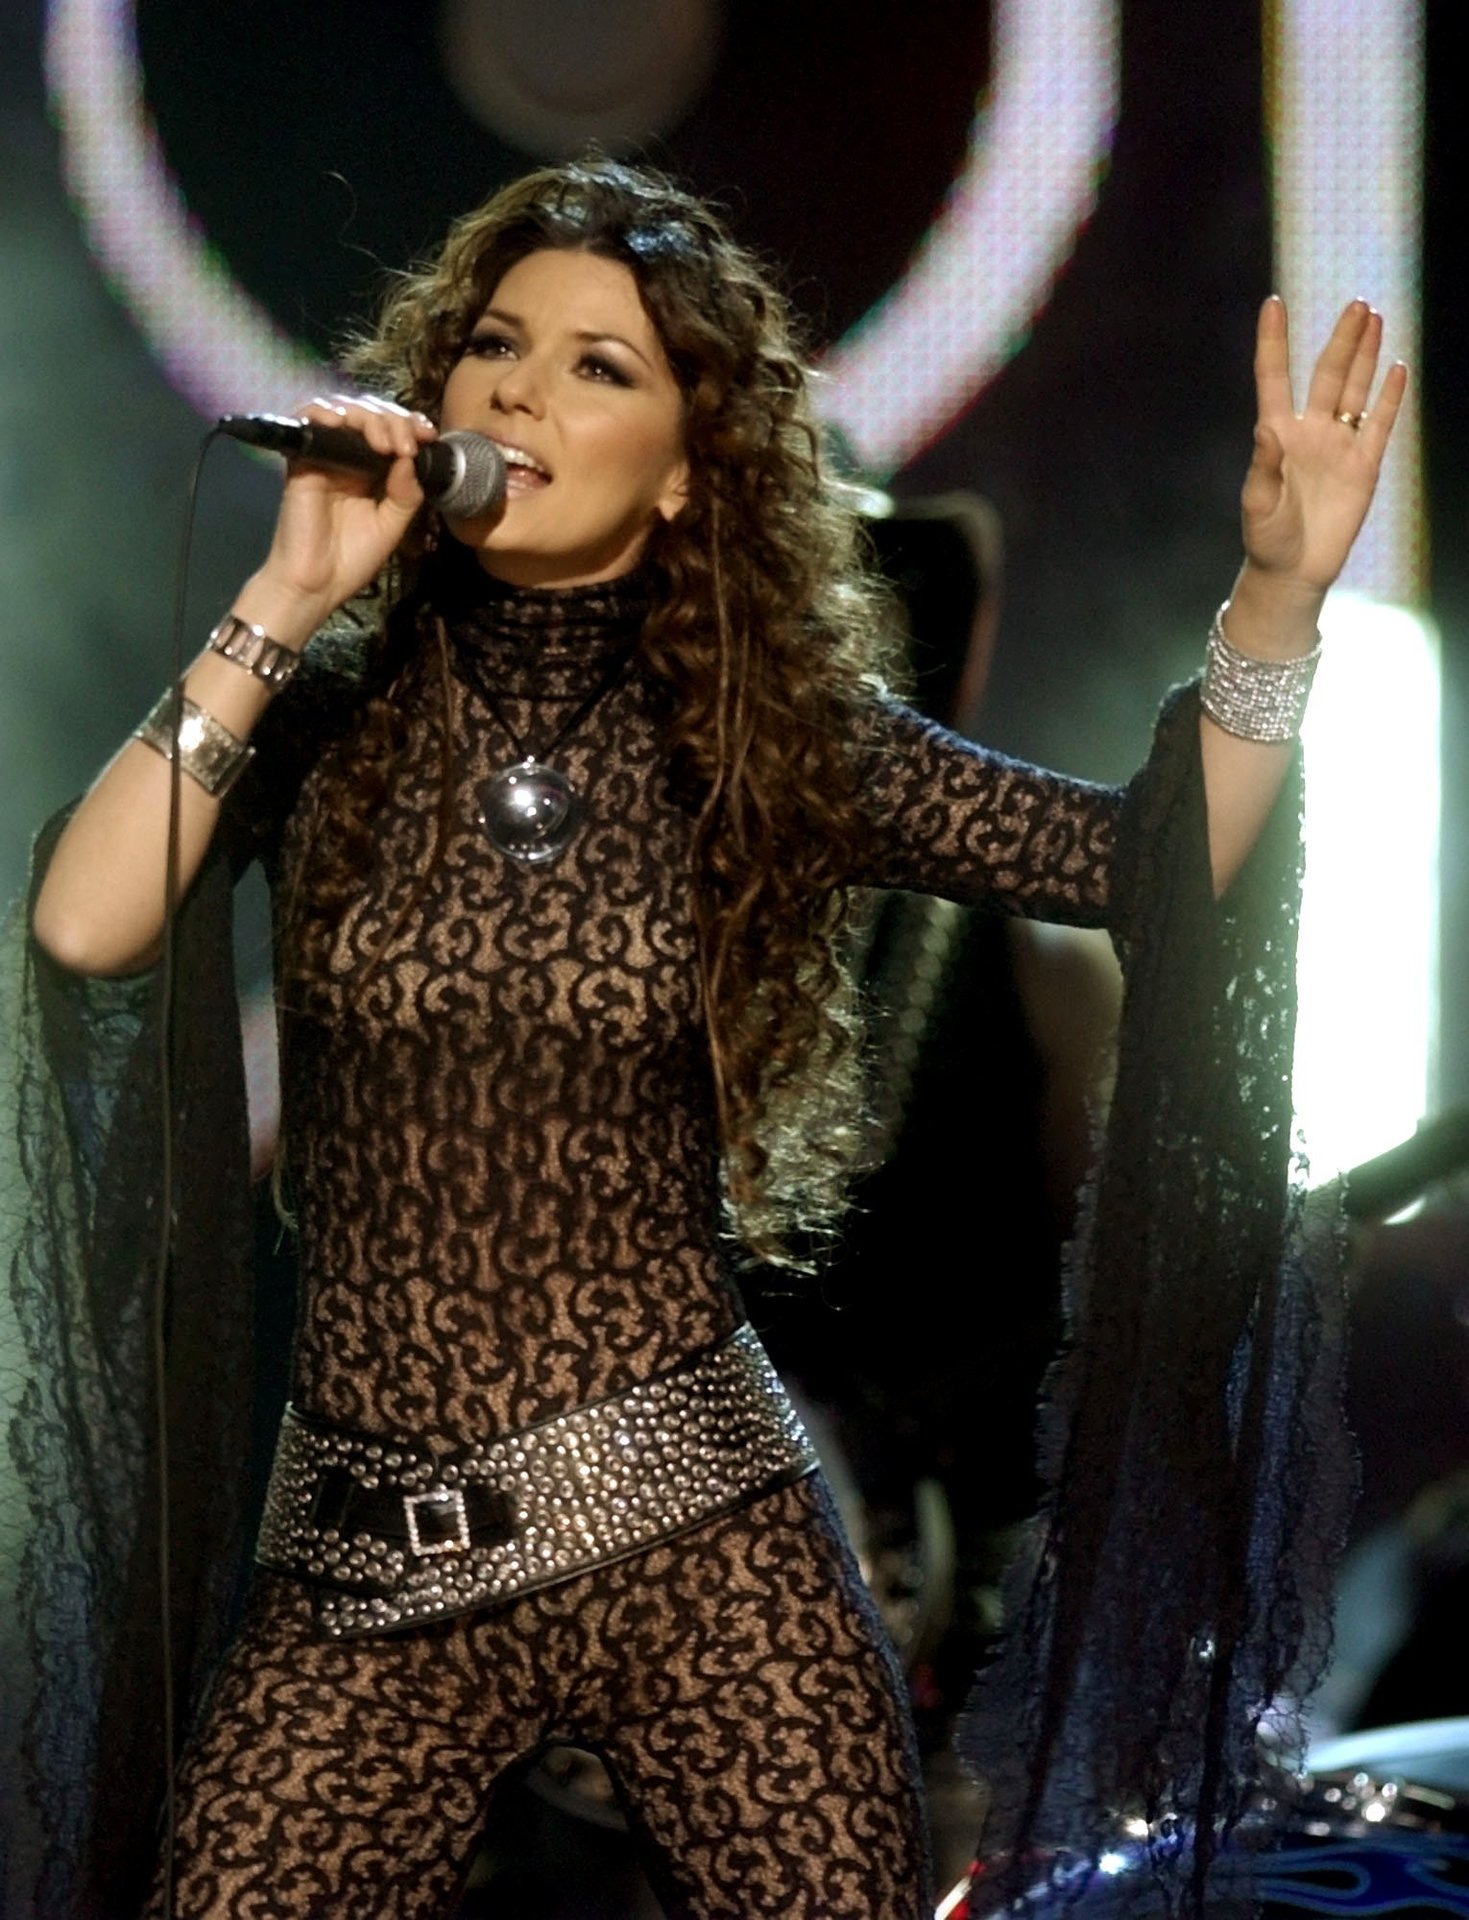 Shania Twain - Wallpaper